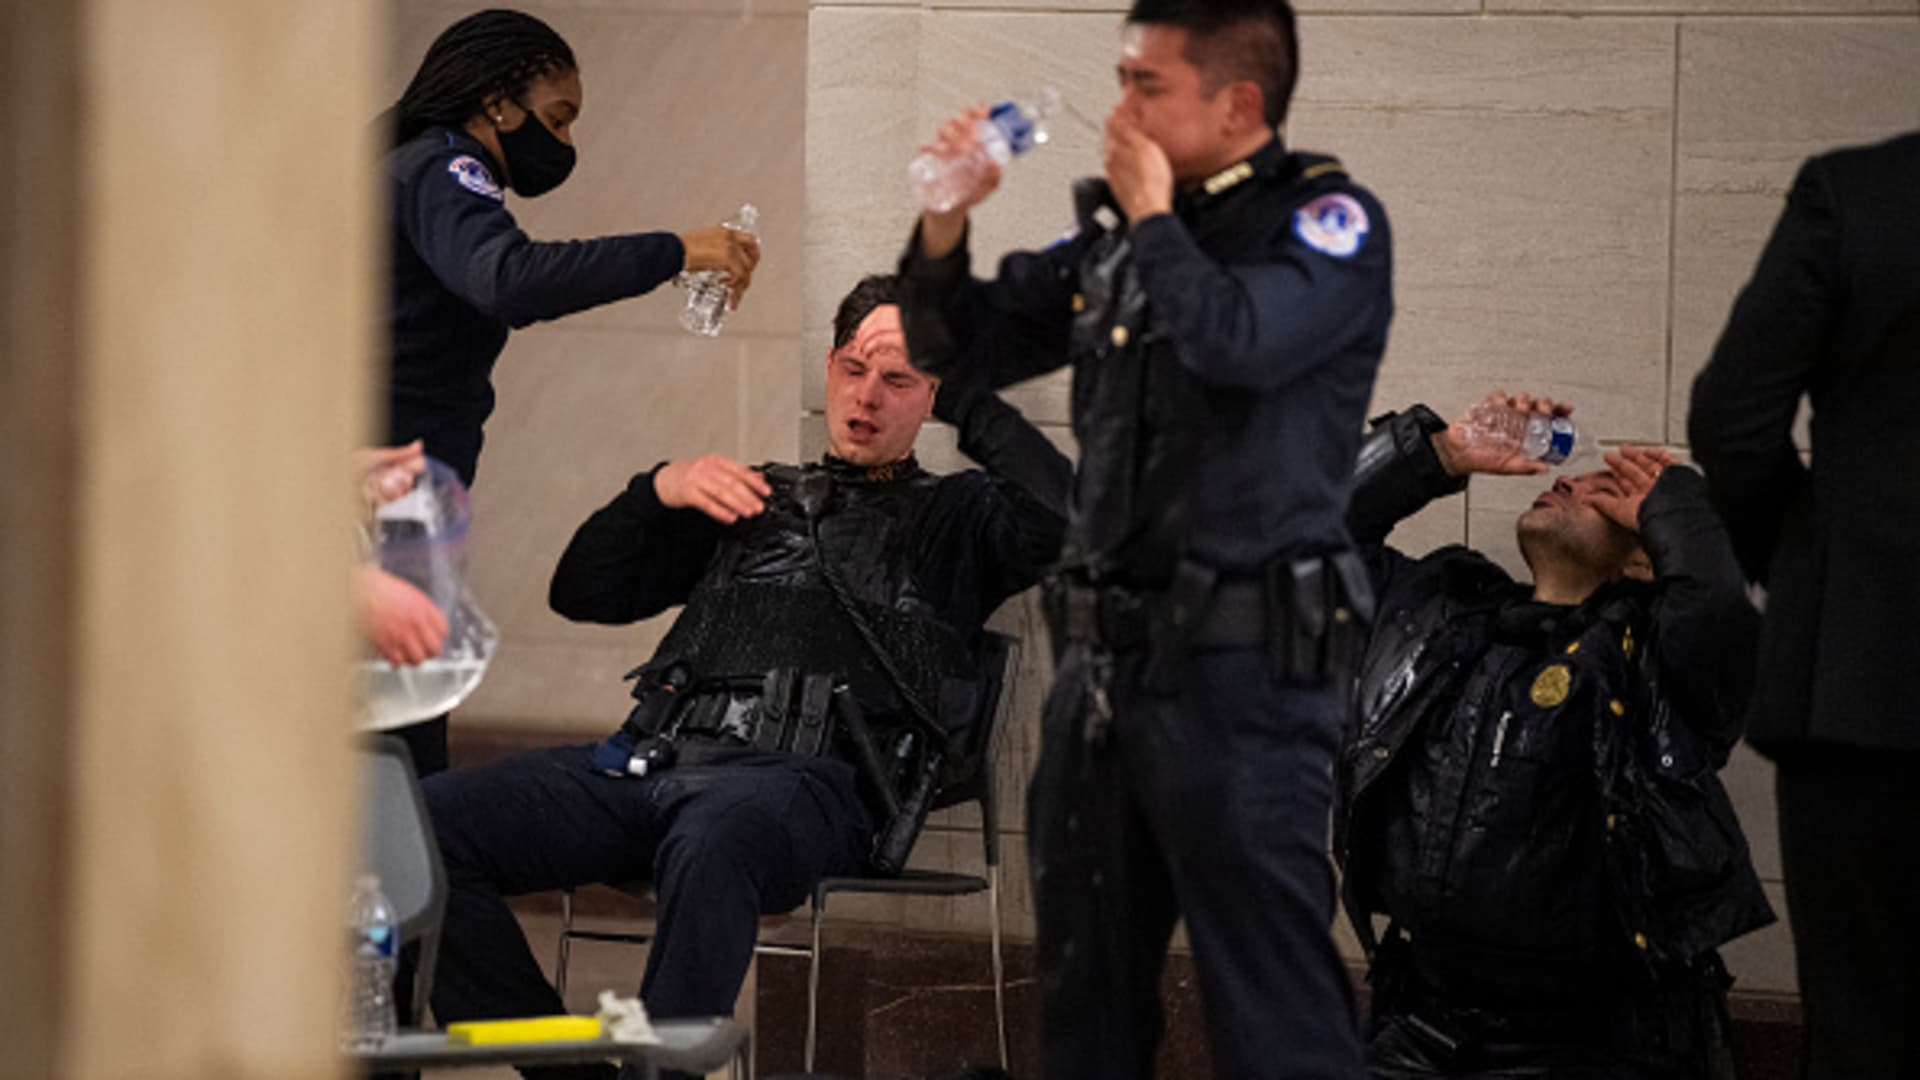 Capitol Police officers receive medical treatment after clashes with protesters attempting to disrupt the joint session of Congress to certify the Electoral College vote on Wednesday, January 6, 2021.